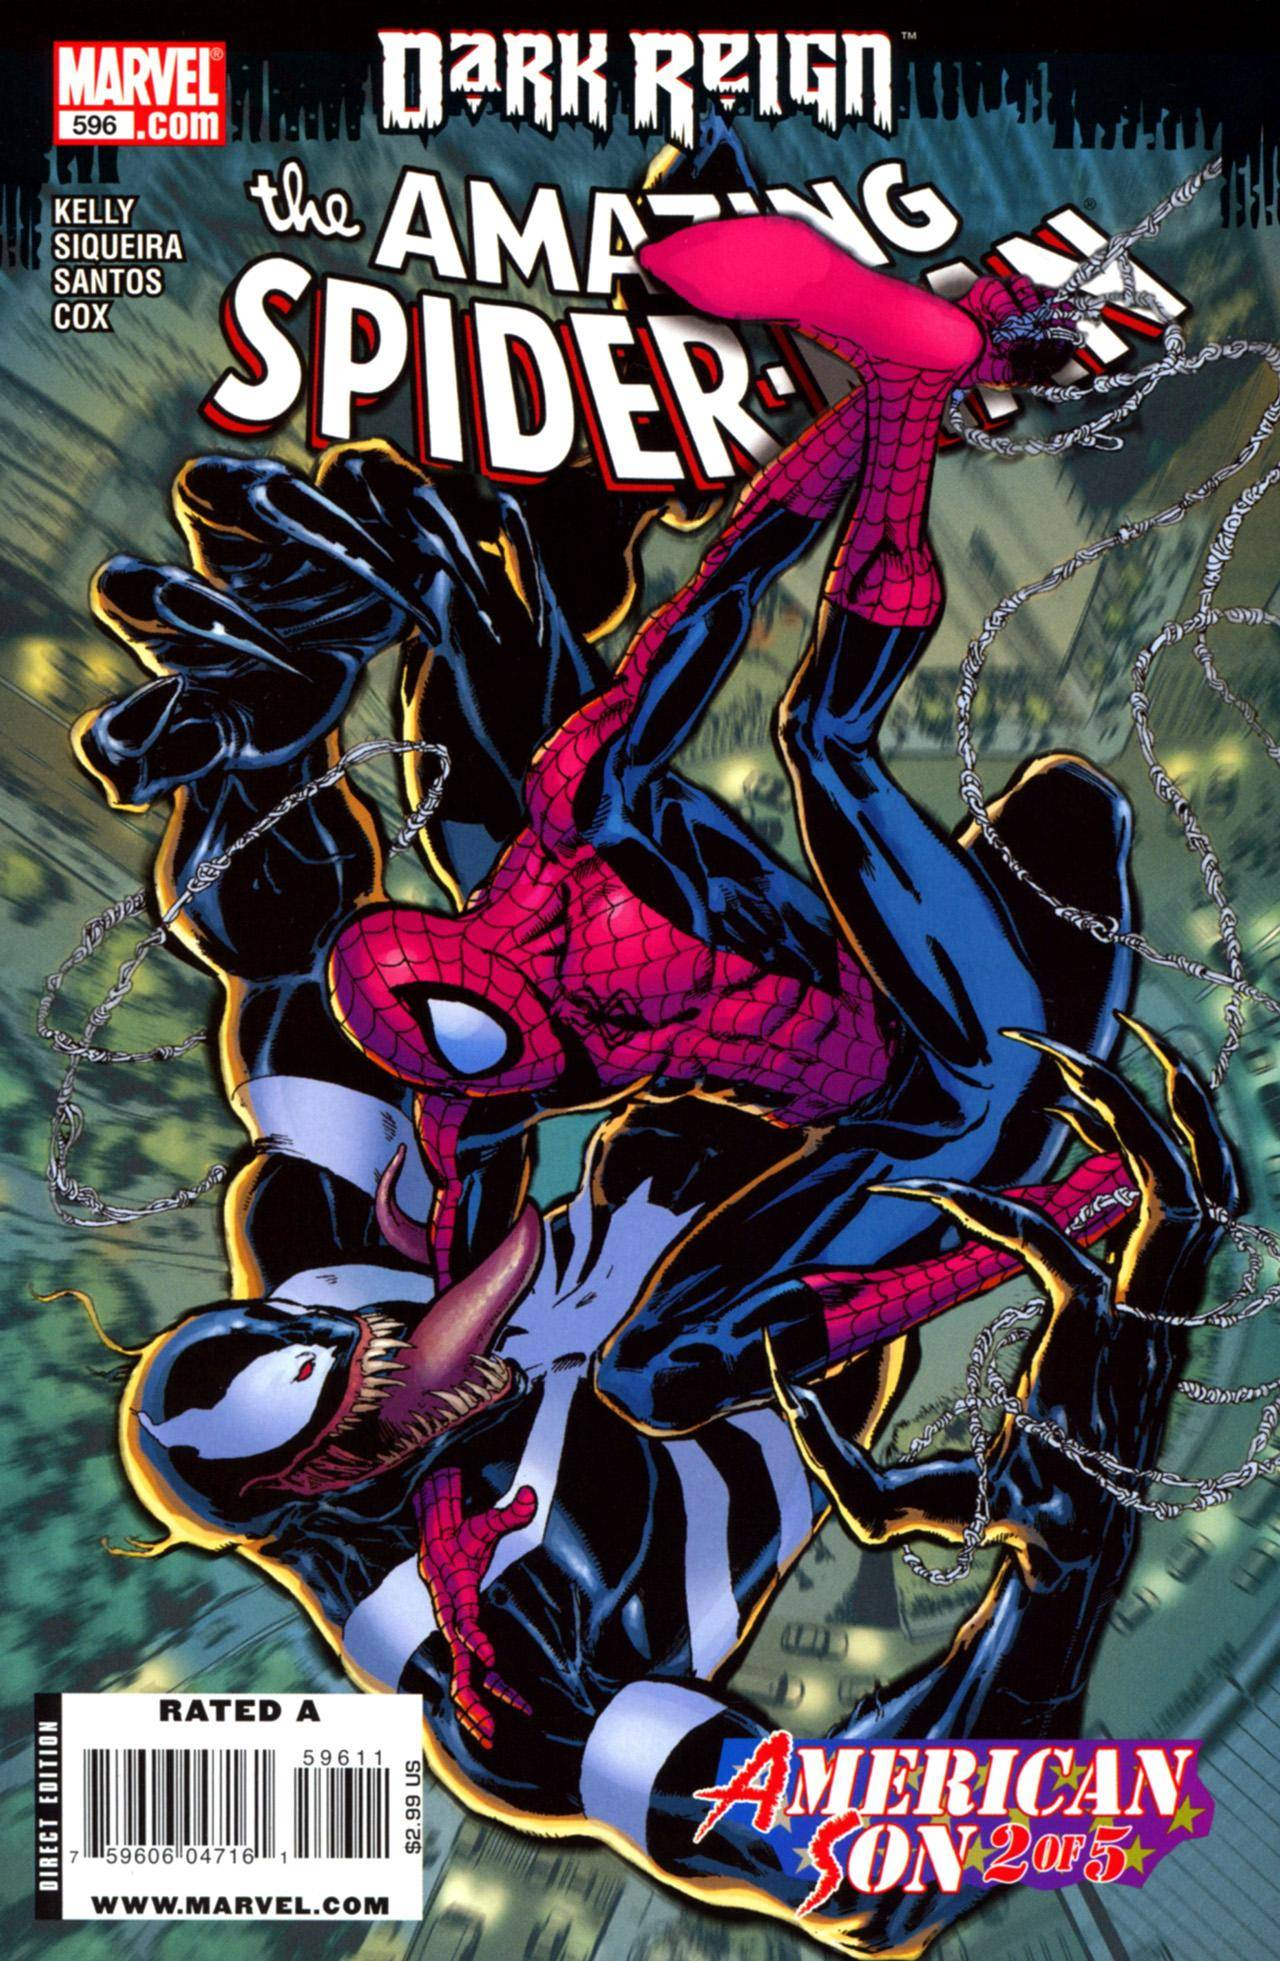 Spider-Man [4760] Amazing Spider-Man 596